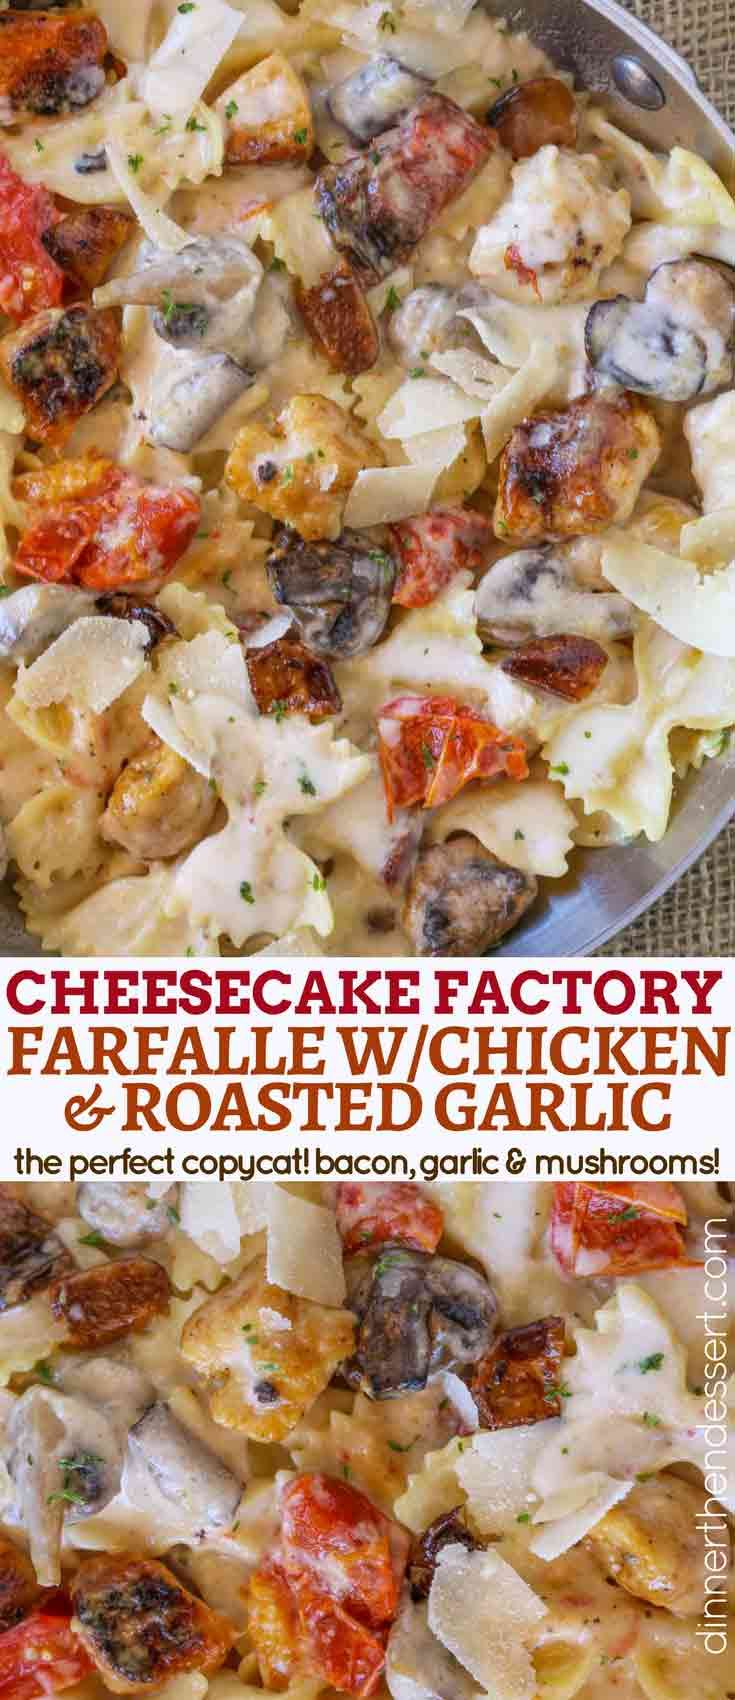 The Cheesecake Factory Farfalle with Chicken and Roasted Garlic is a perfect copycat of my favorite creamy, cheesy bacon and mushroom pasta dish and one of the most popular recipes on the menu!